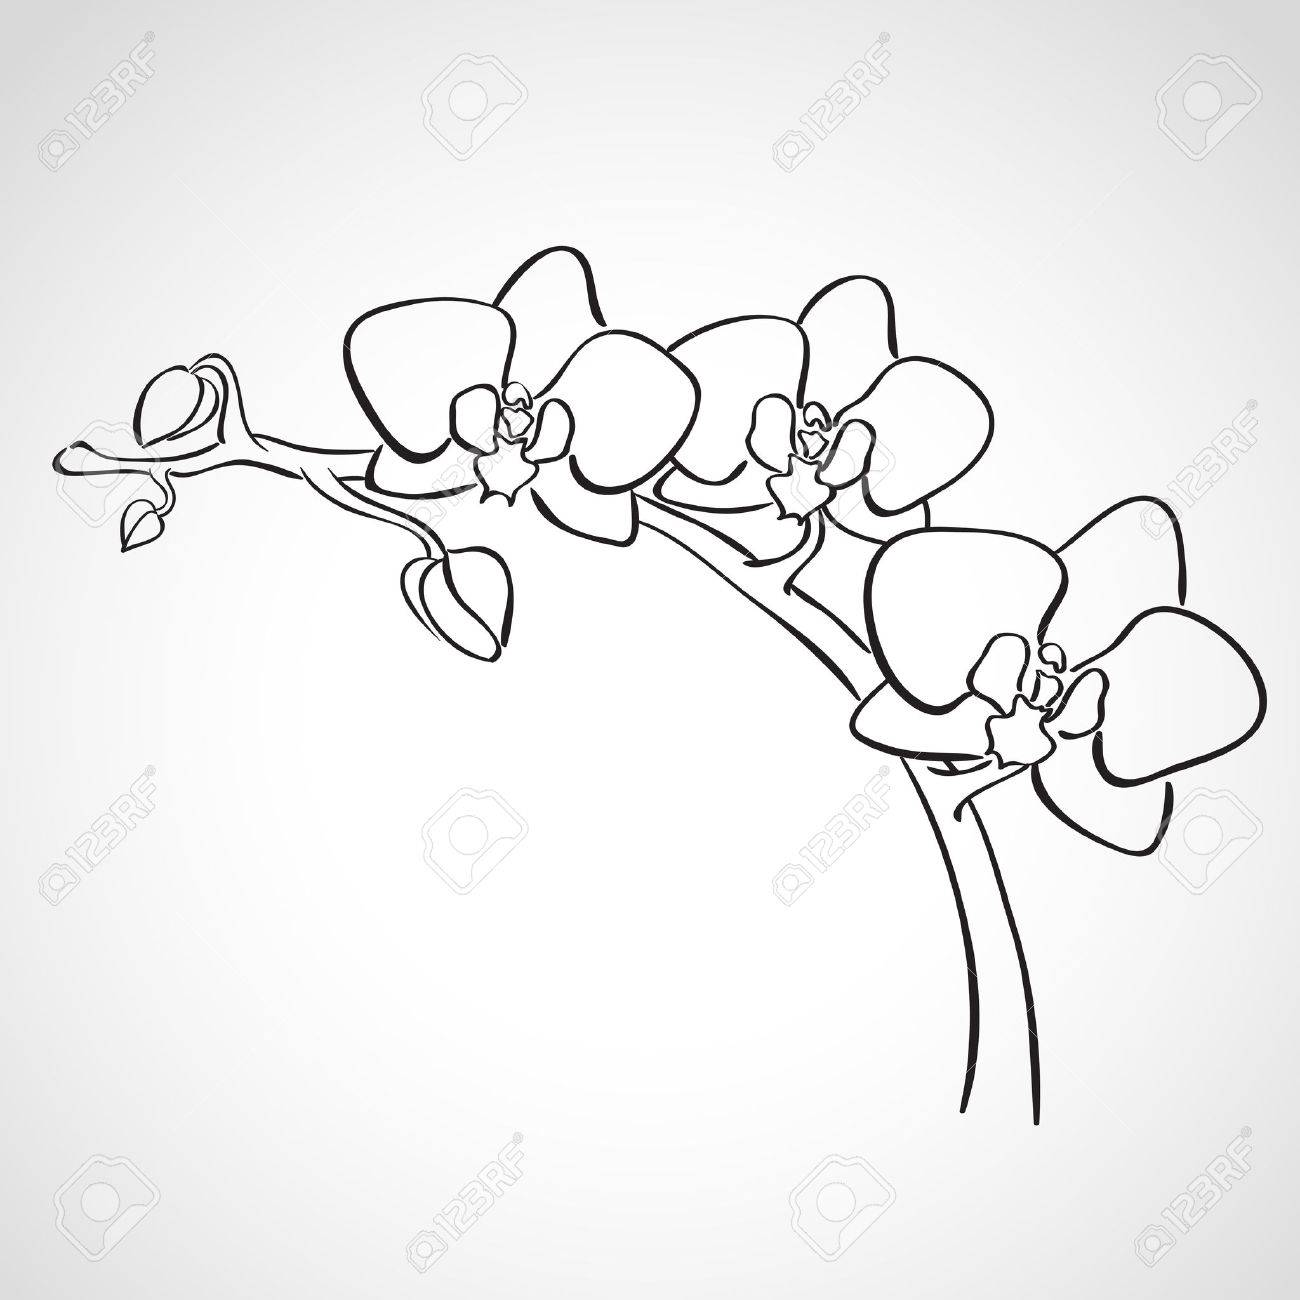 Sketch orchid branch, hand drawn, ink style - 27321478